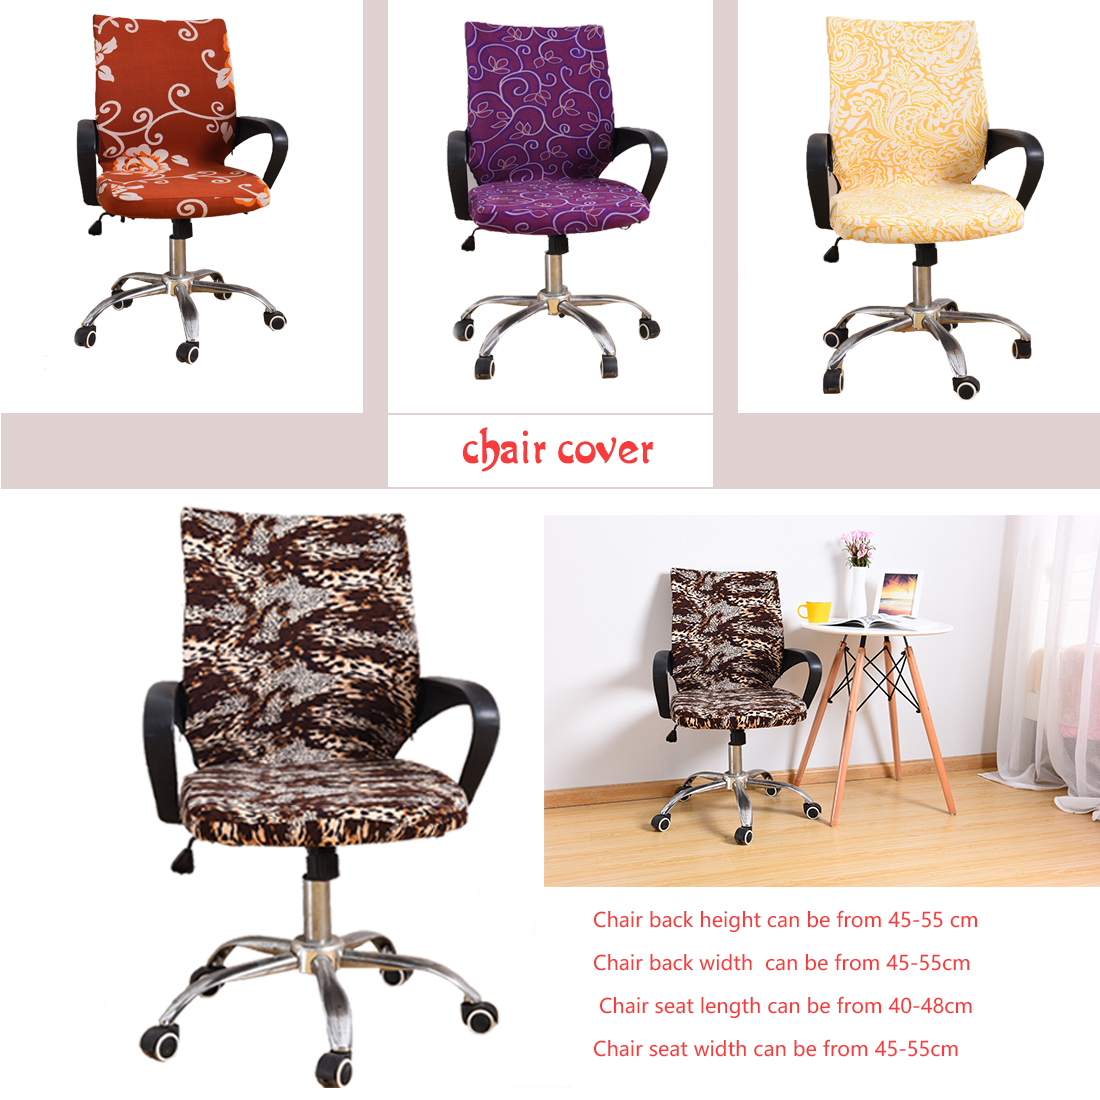 Chair-Covers-Spandex Polyester Computer Chair Cover Spandex Covers for Chairs Lycra Chair Stretch Case to Fit office Chairs